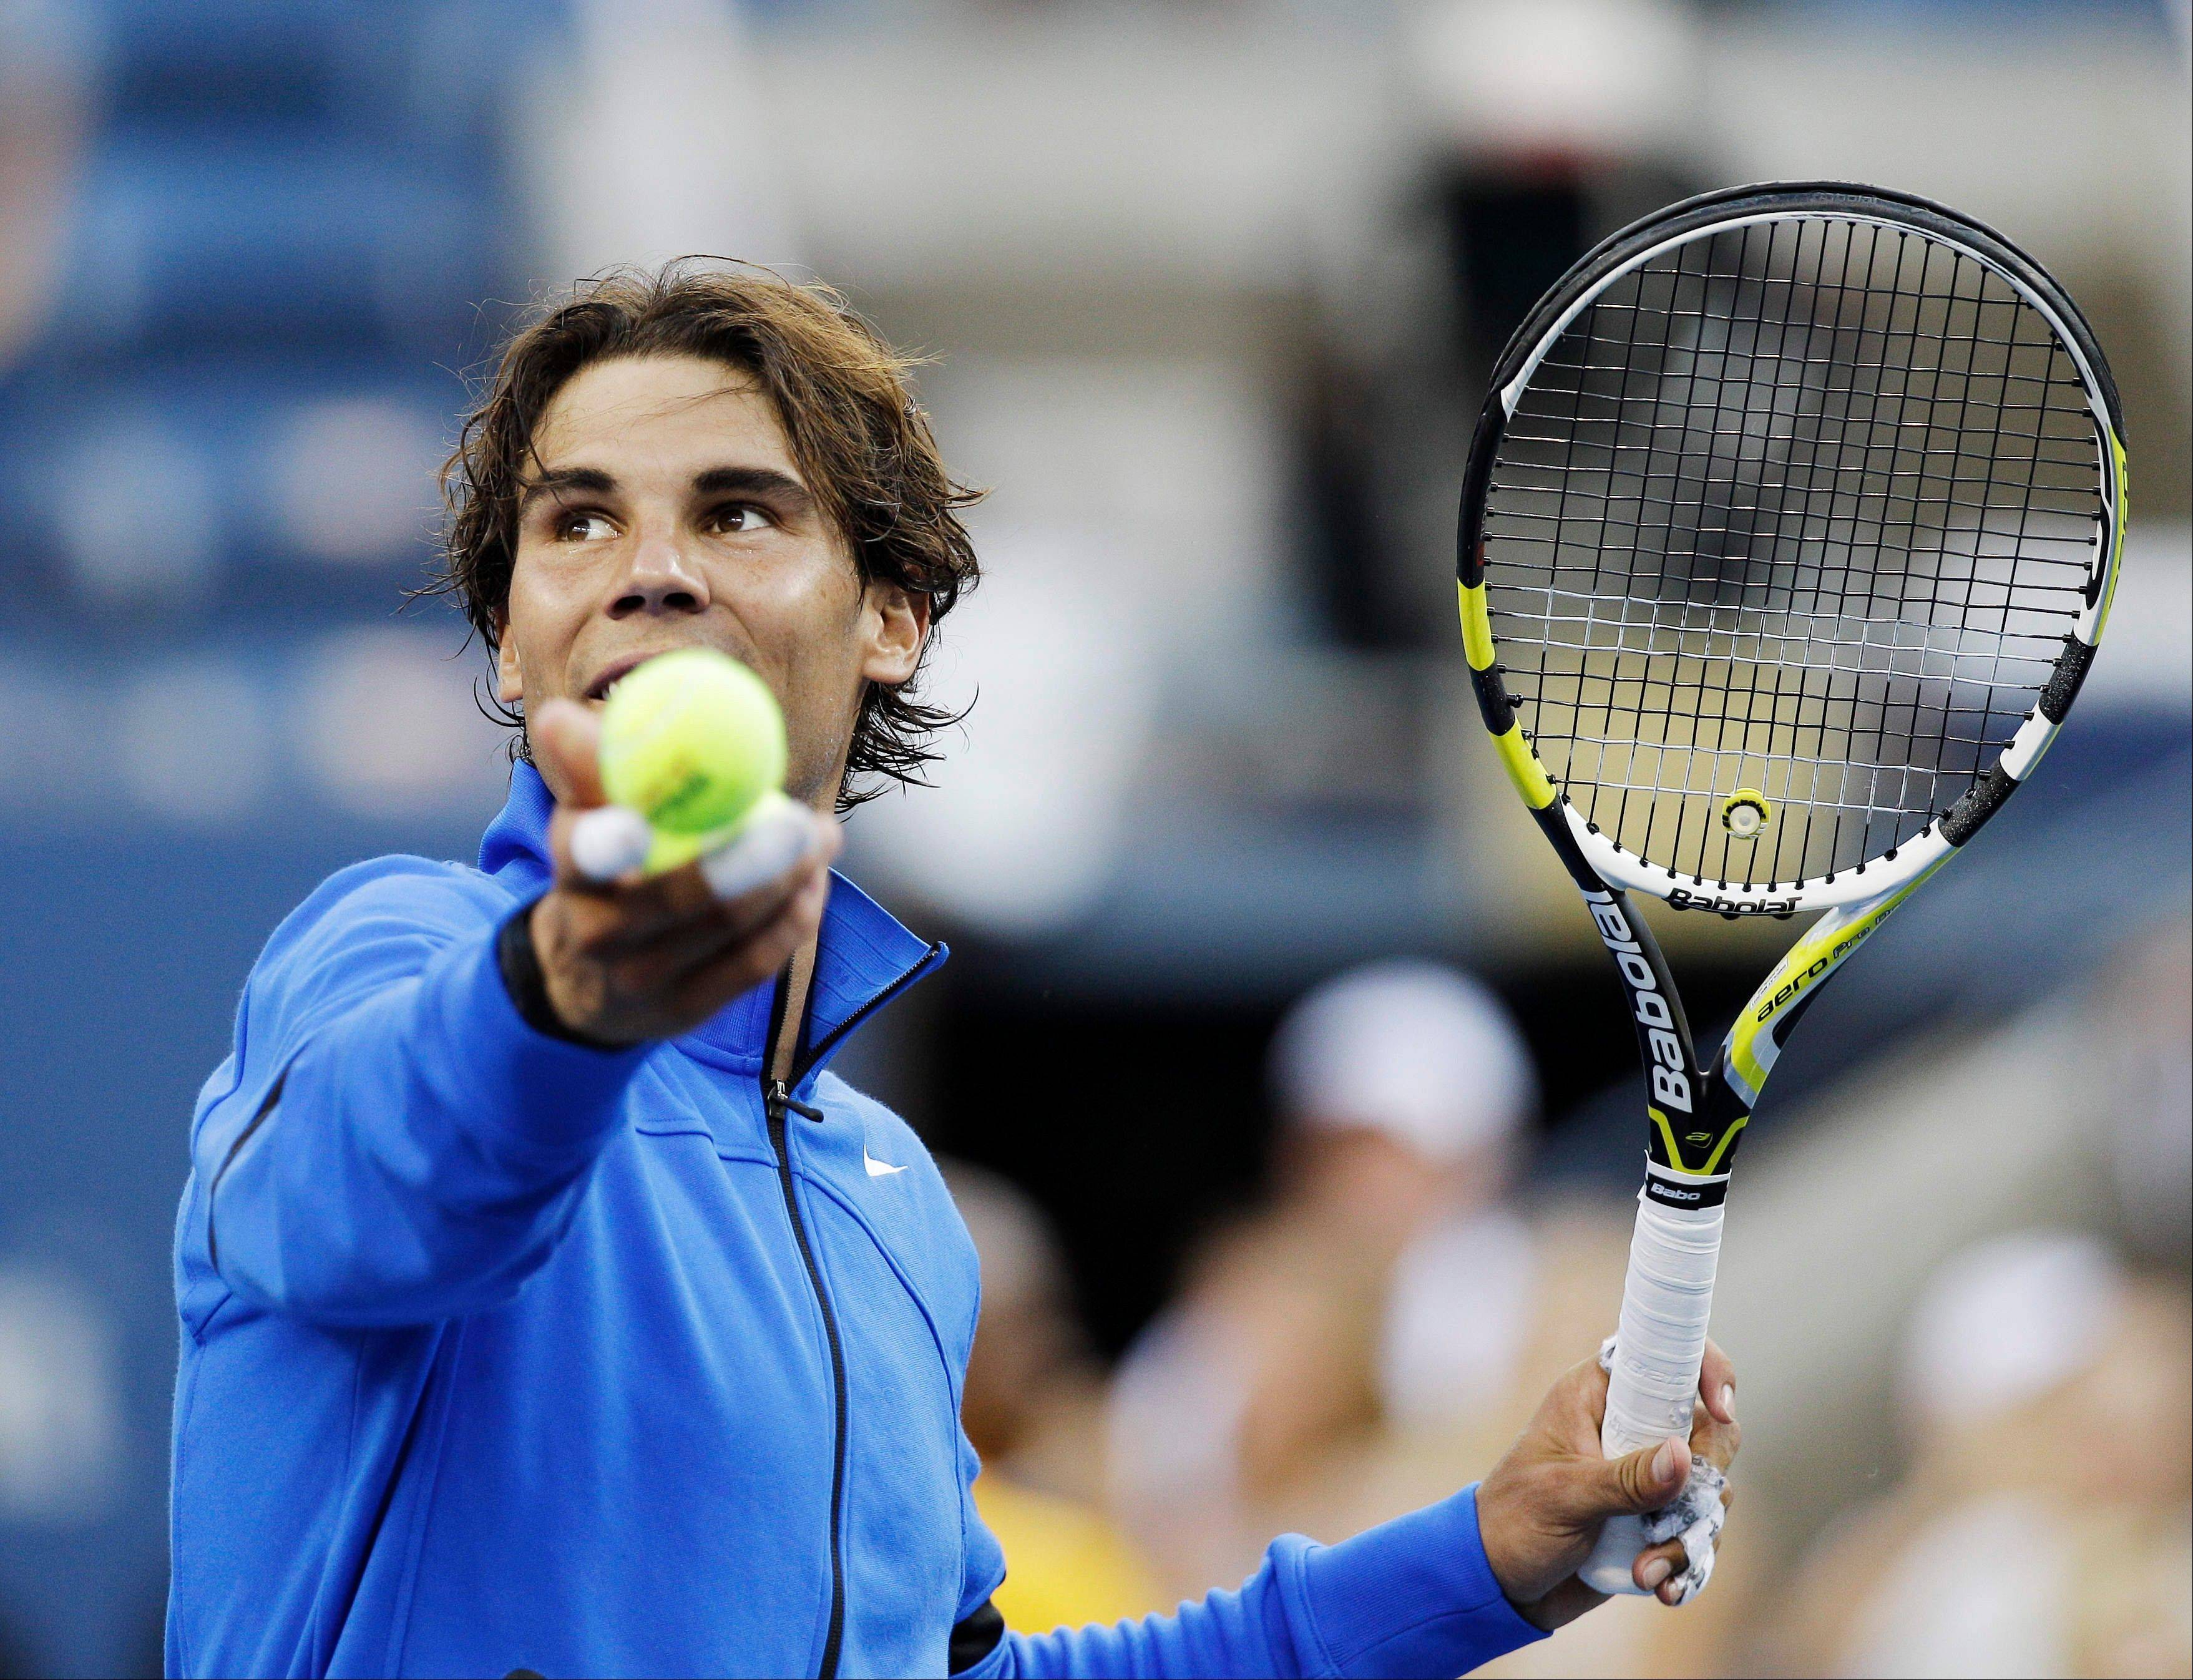 Rafael Nadal of Spain hits a ball into the stands after winning a quarterfinal match against Andy Roddick at the U.S. Open tennis tournament in New York, Friday, Sept. 9, 2011. (AP Photo/Matt Slocum)